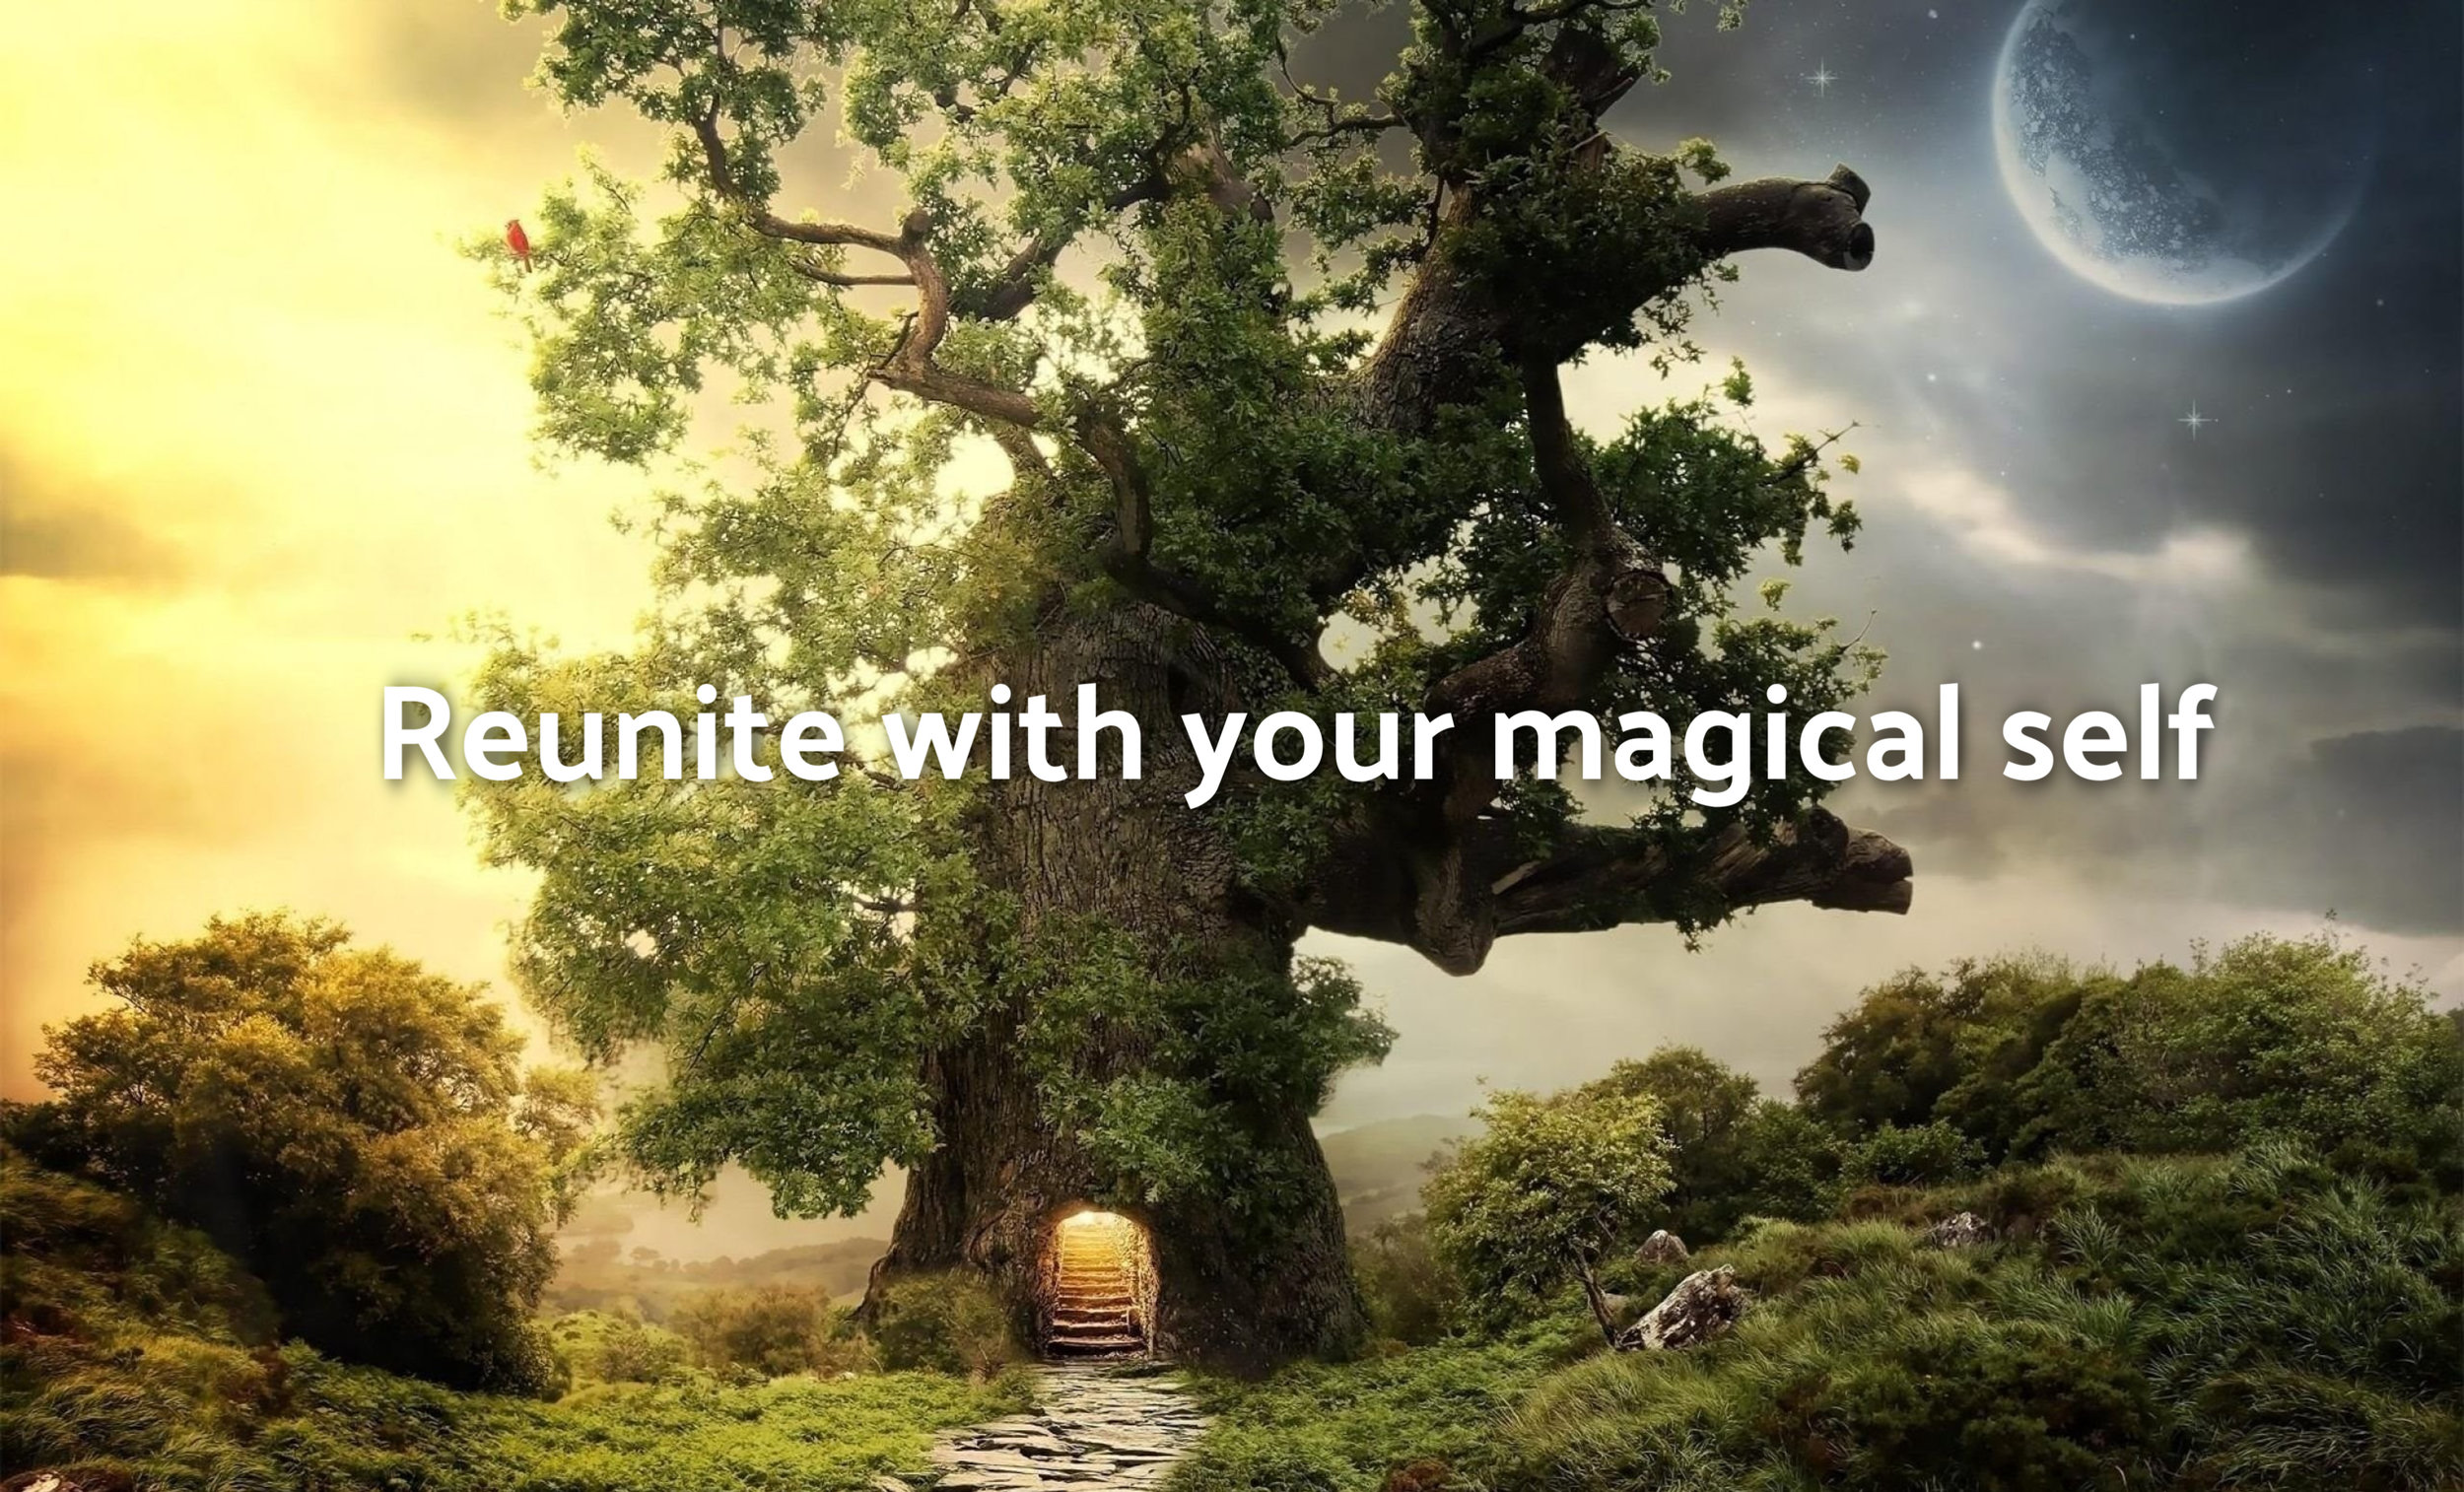 words-437865_fantasy-forest-hd-wallpapers-free-download-in-high-quality_2560x1600_h.jpg